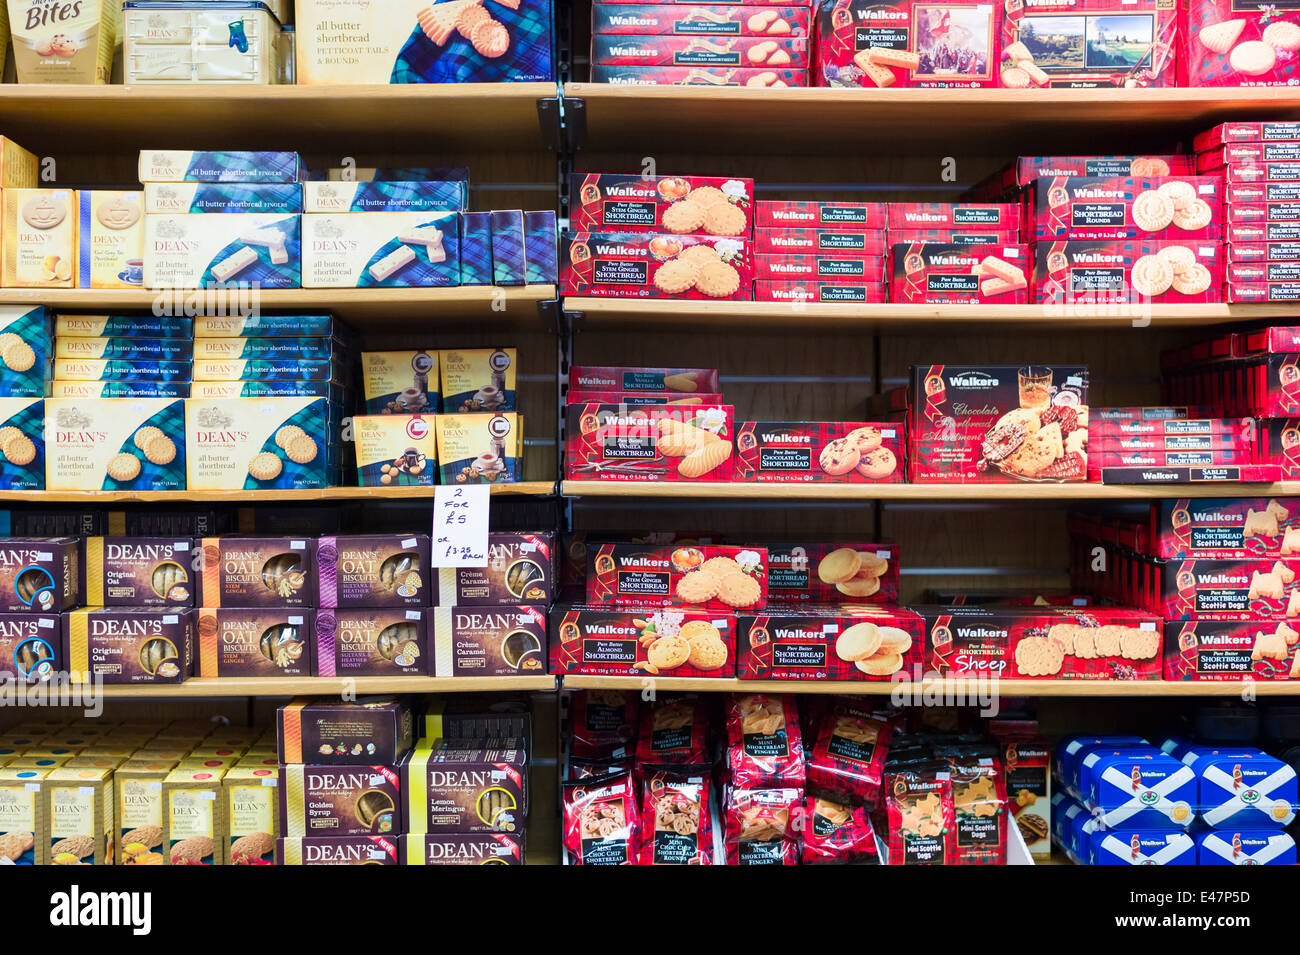 Traditional Scottish food products - shortbread and oat biscuits - for sale in James Pringle Shop, Glasgow, SCOTLAND, Stock Photo